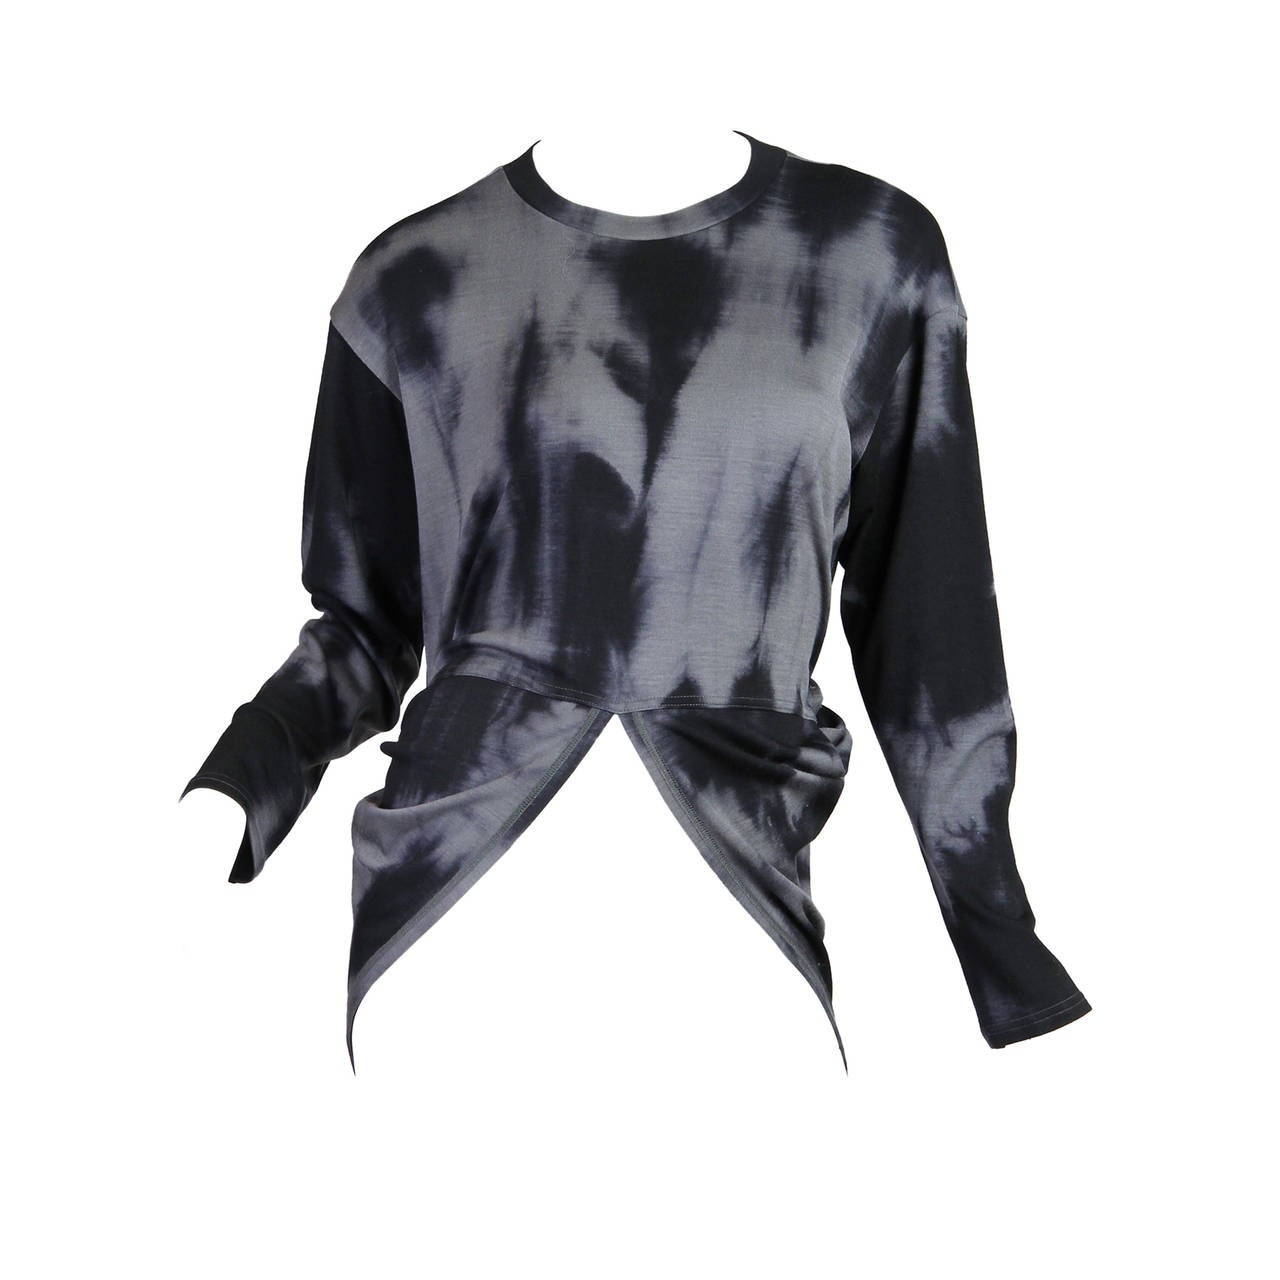 Issey Miyake Permanente Tie-Dye Punk Sweater For Sale